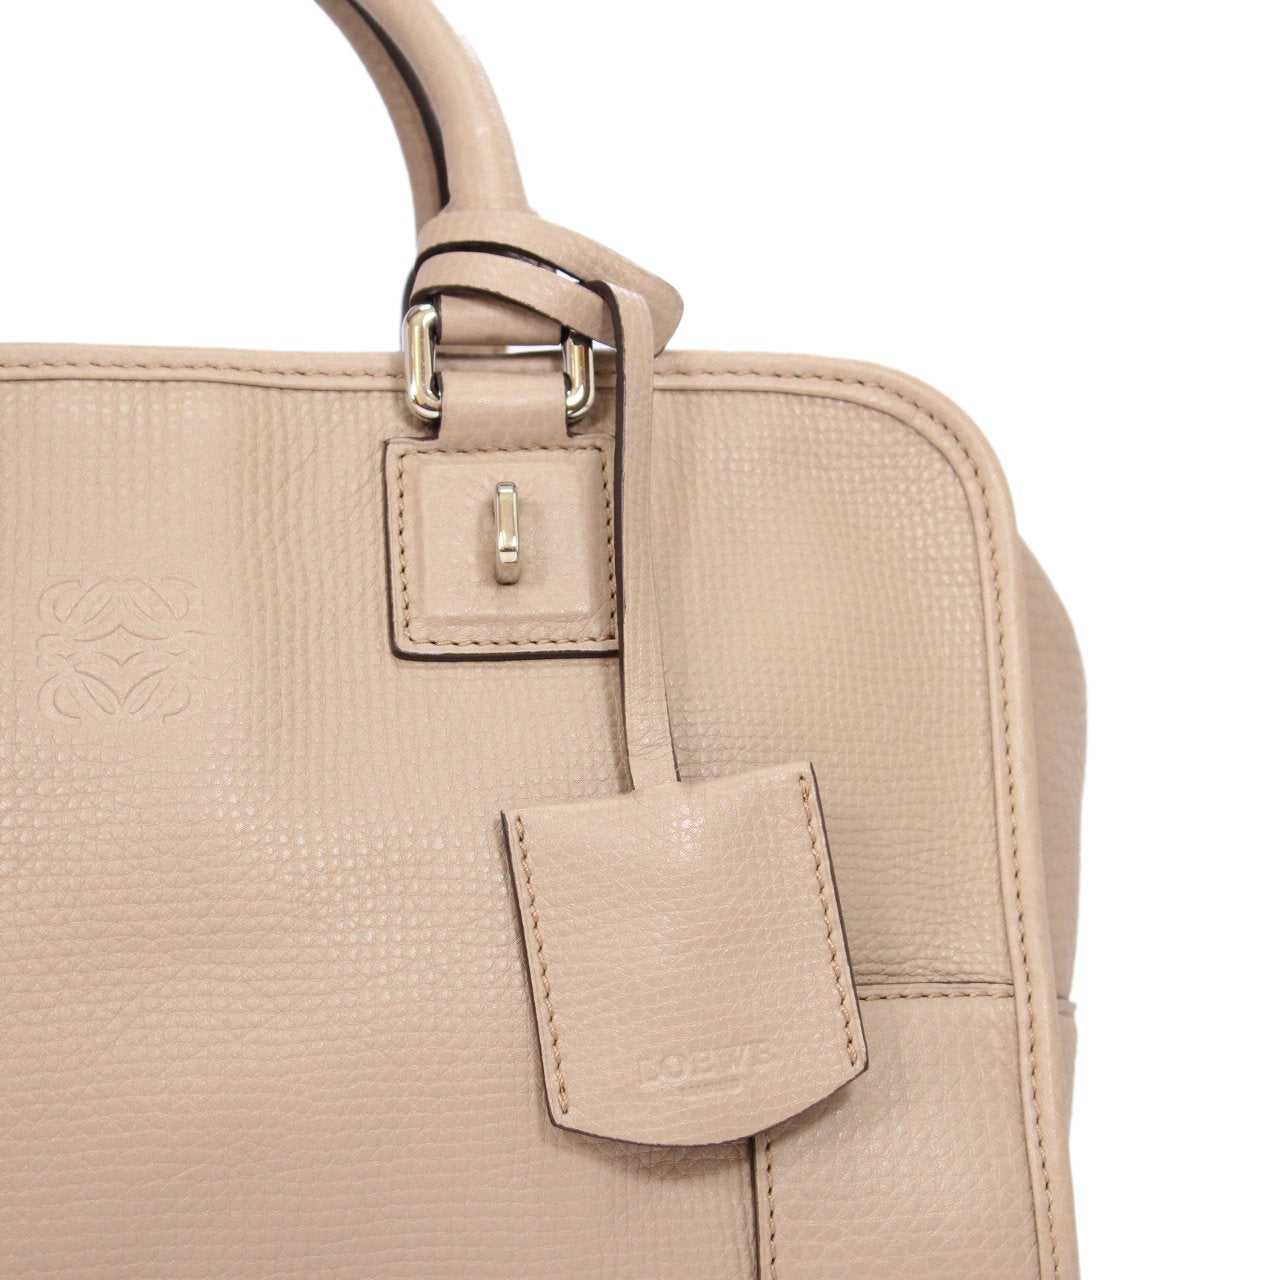 Loewe Amazona Bag In Textured Goat Skin And Sheep Skin Leather